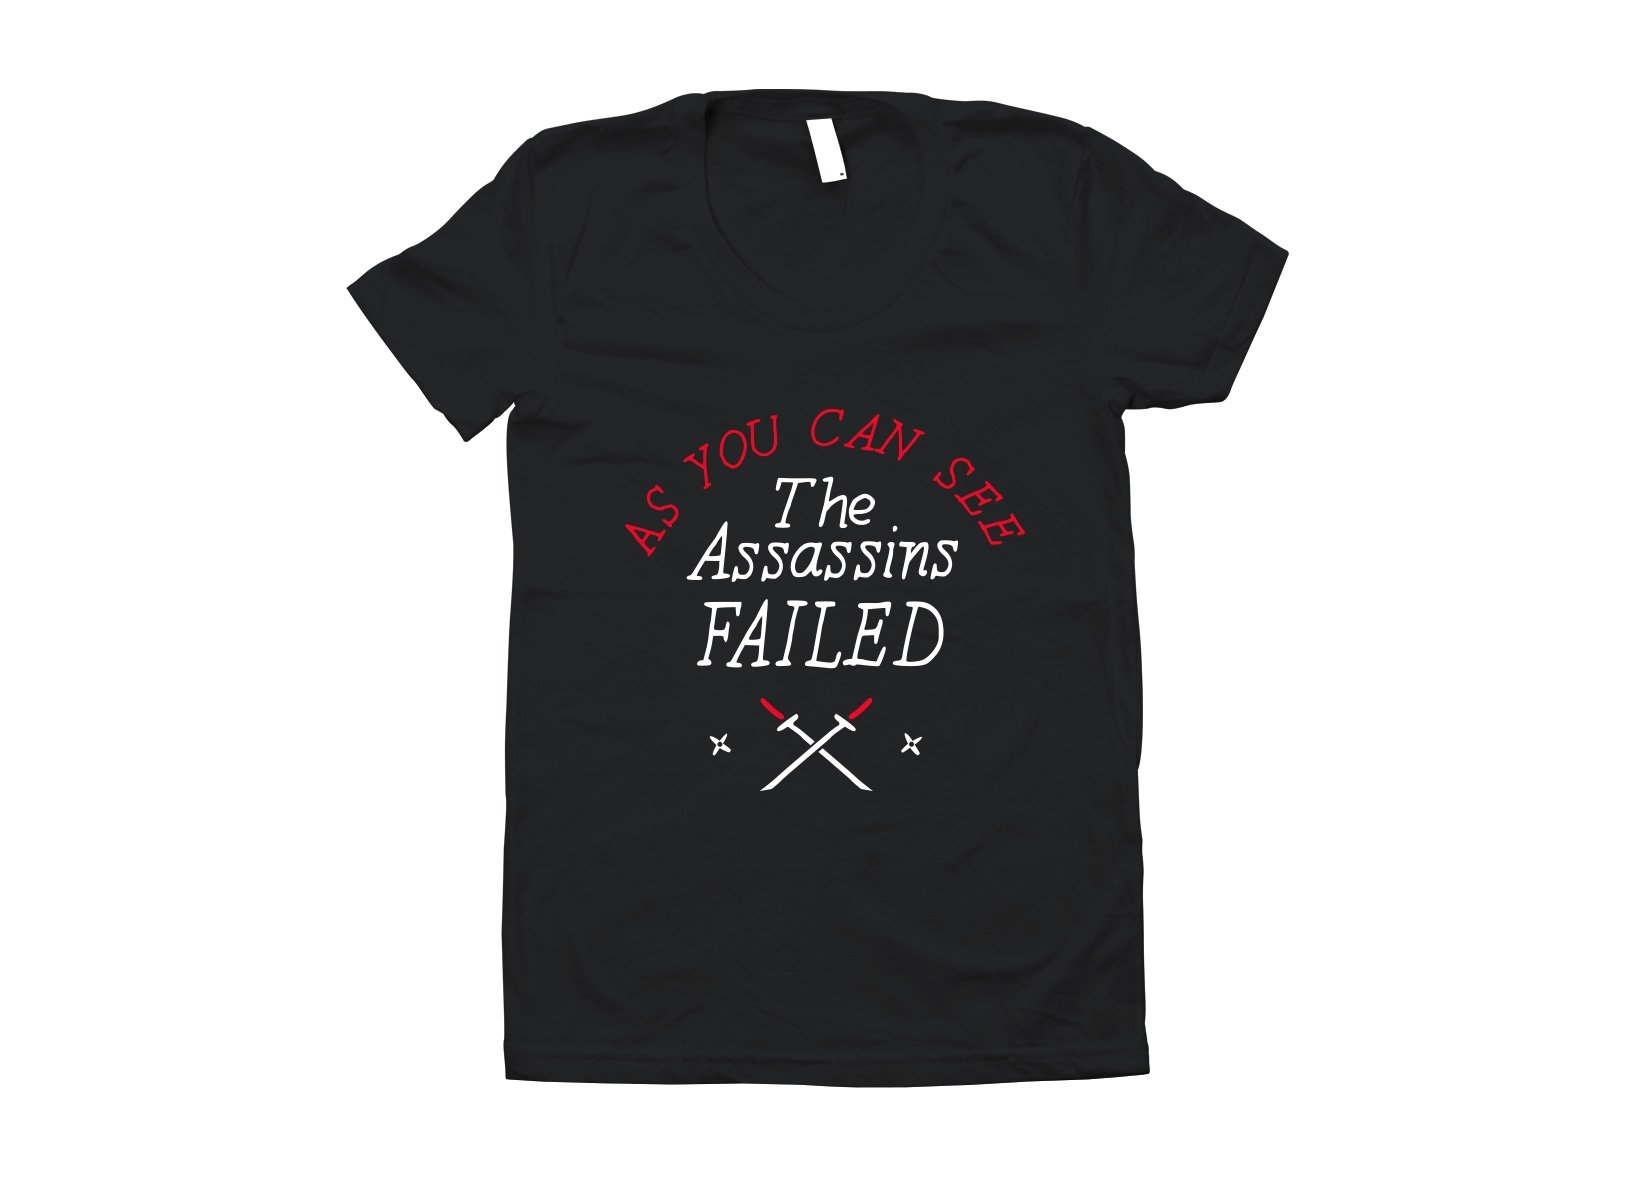 The Assassins Failed on Juniors T-Shirt